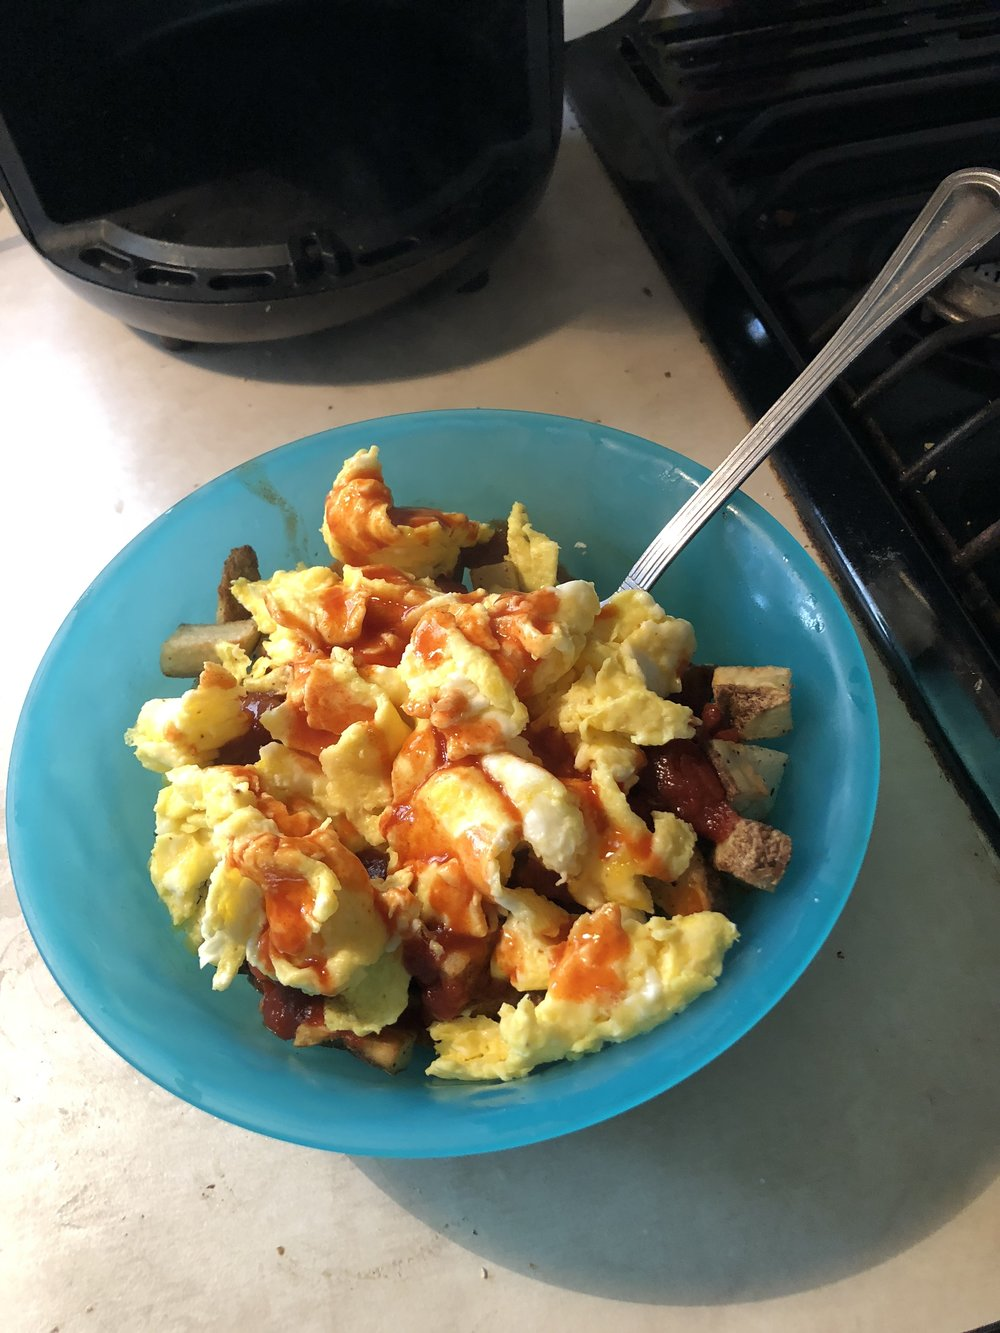 Fresh cut home fries with jalapeño ketchup and eggs with hot sauce: breakfast of itinerant dulcimer dreadies.